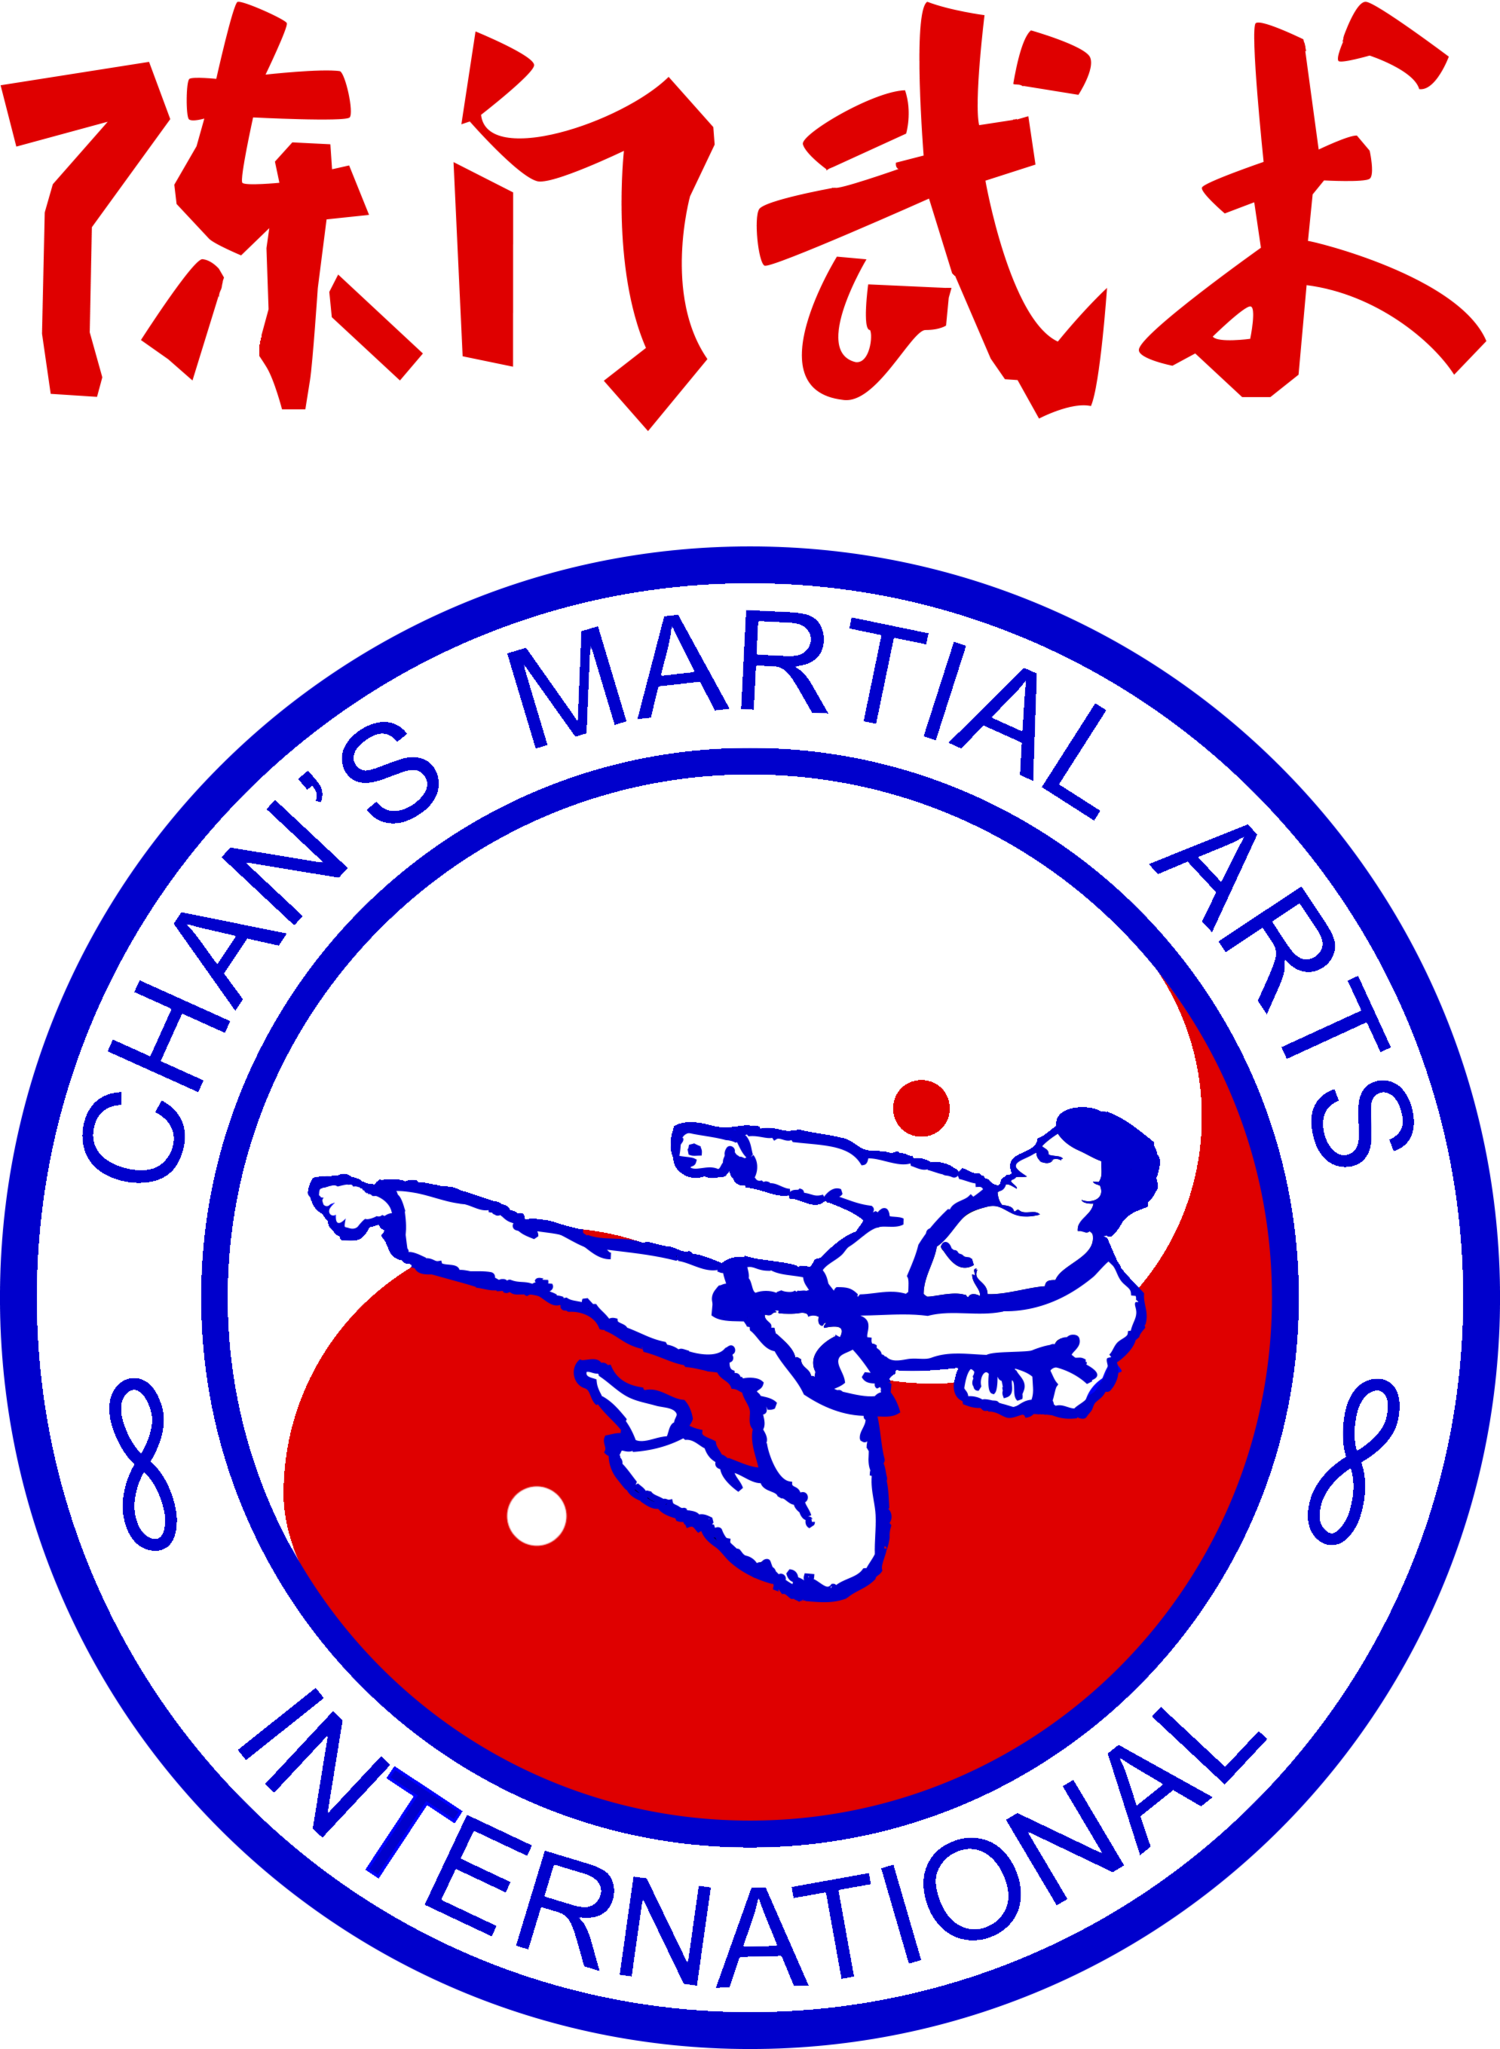 Chans Martial Arts International